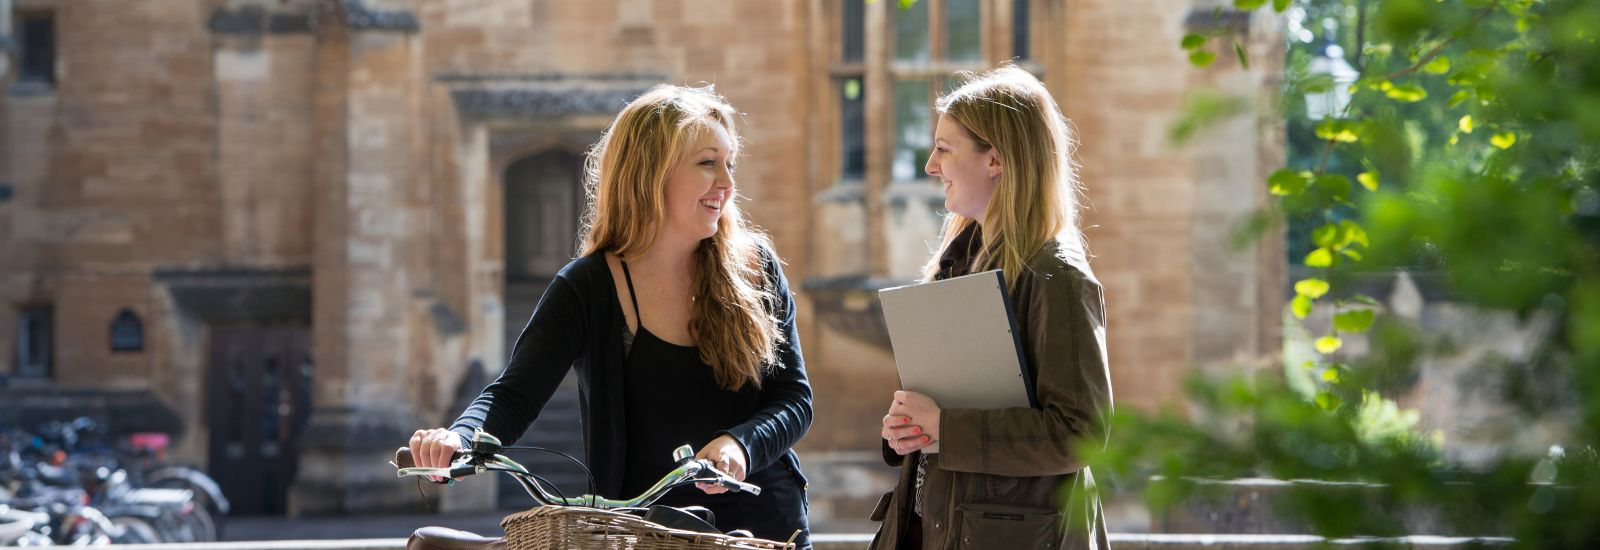 New students chatting in Holywell Quad